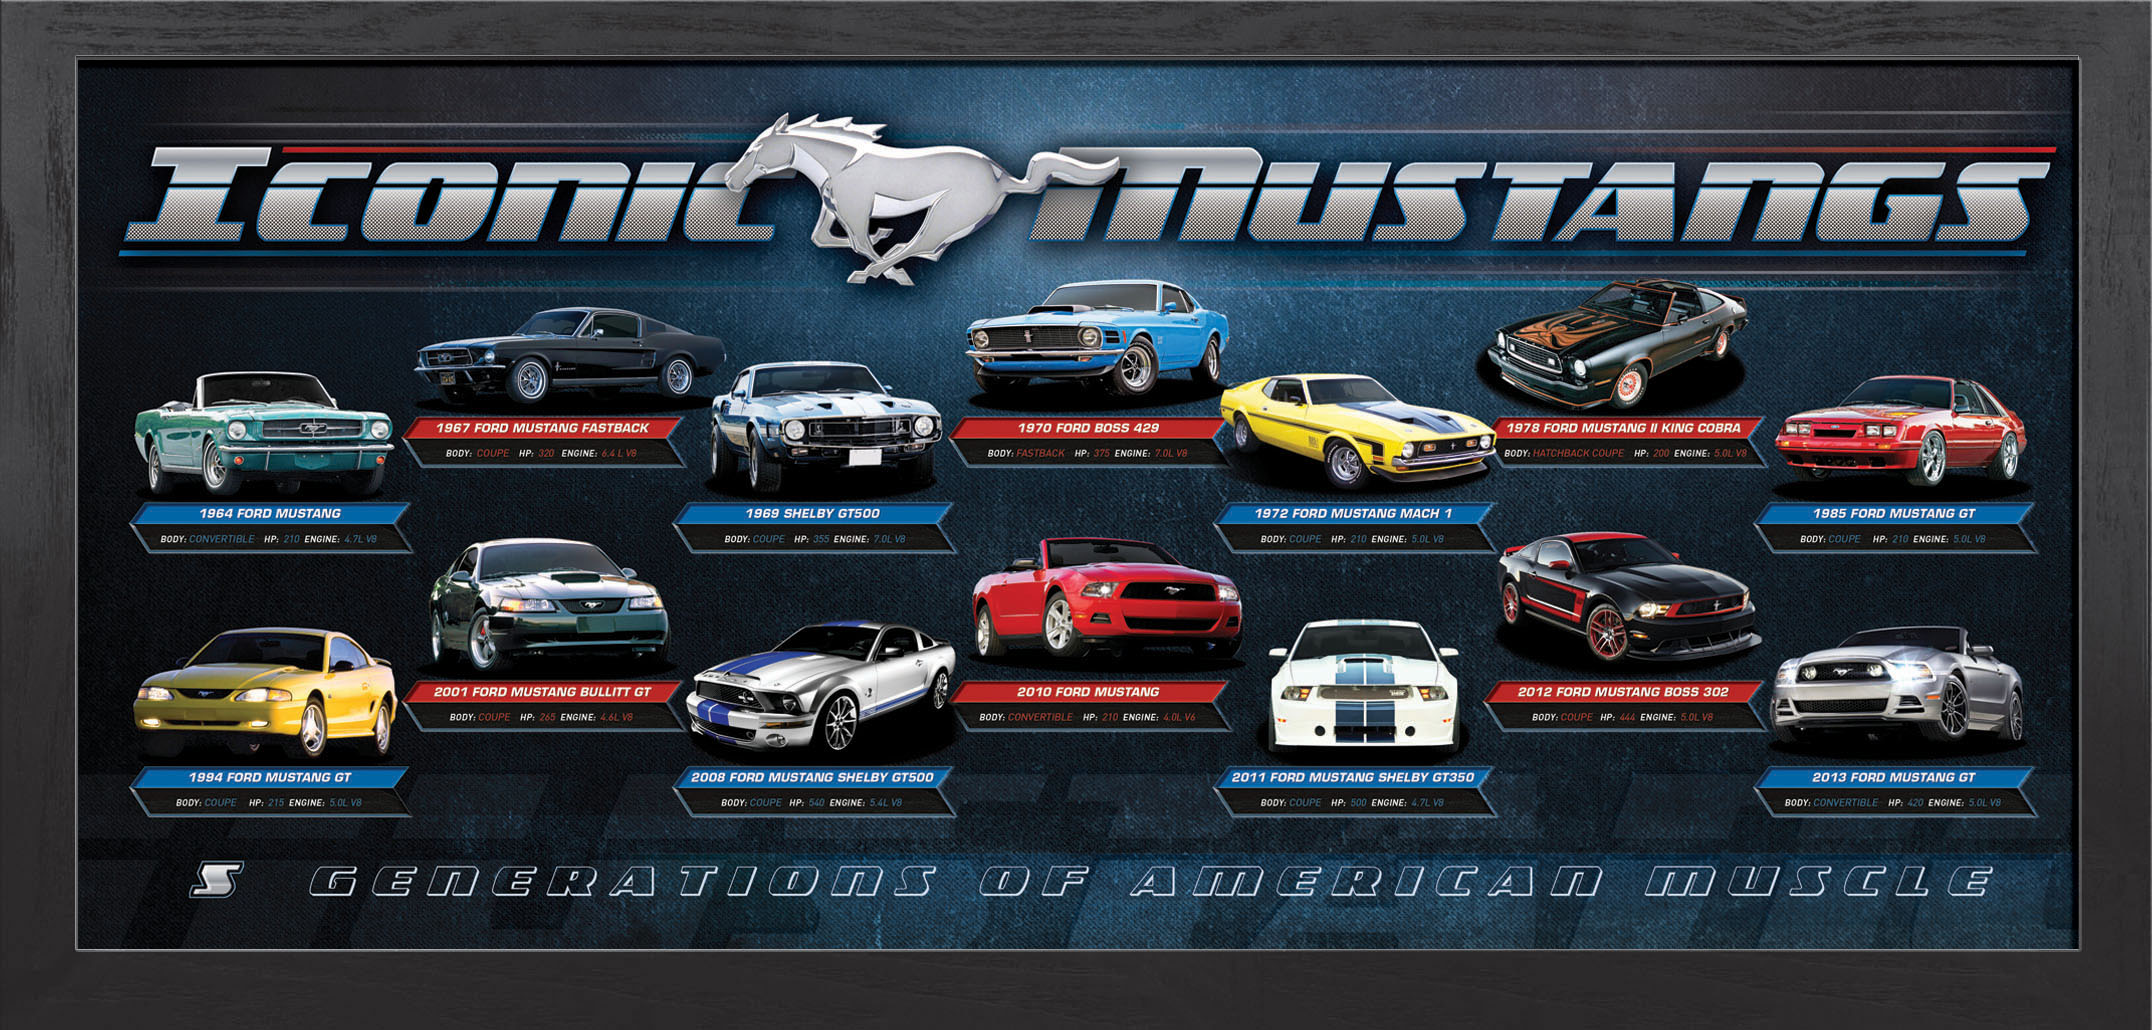 "the history of the ford mustang The ford motor company refers to the classic mustang as ""design in motion"" according to ford, the ford mustang is an iconic muscle car, crafted with power and innovative styling."